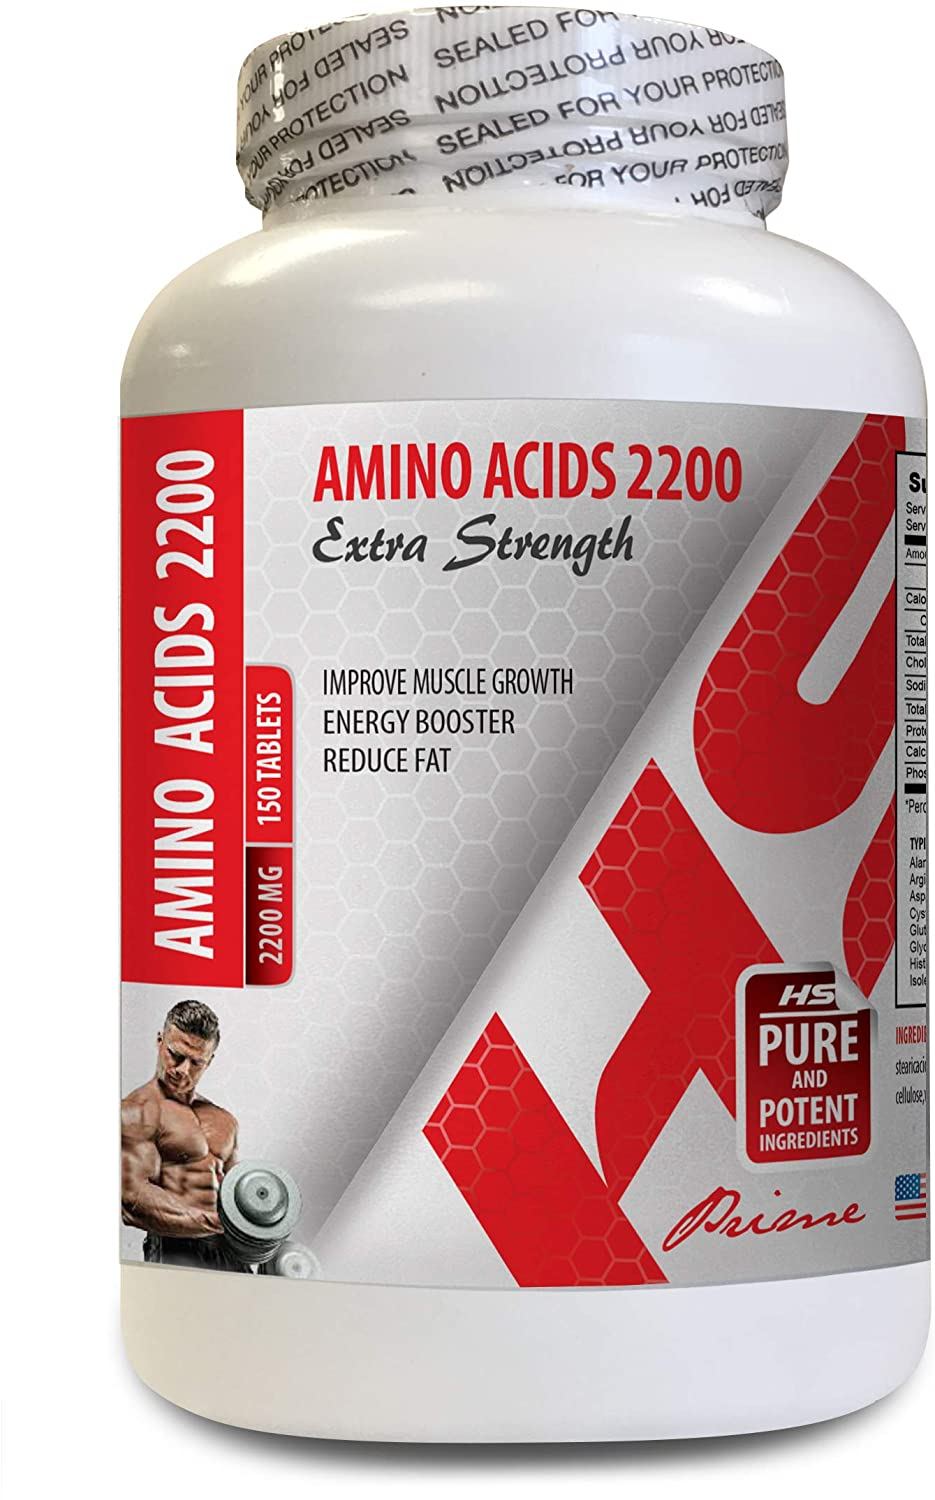 Energy Booster for Weight Loss - arginine Vitamins - Amino ACIDS 2200 - Energy Booster pre Workout - 1 Bottle 150 Tablets